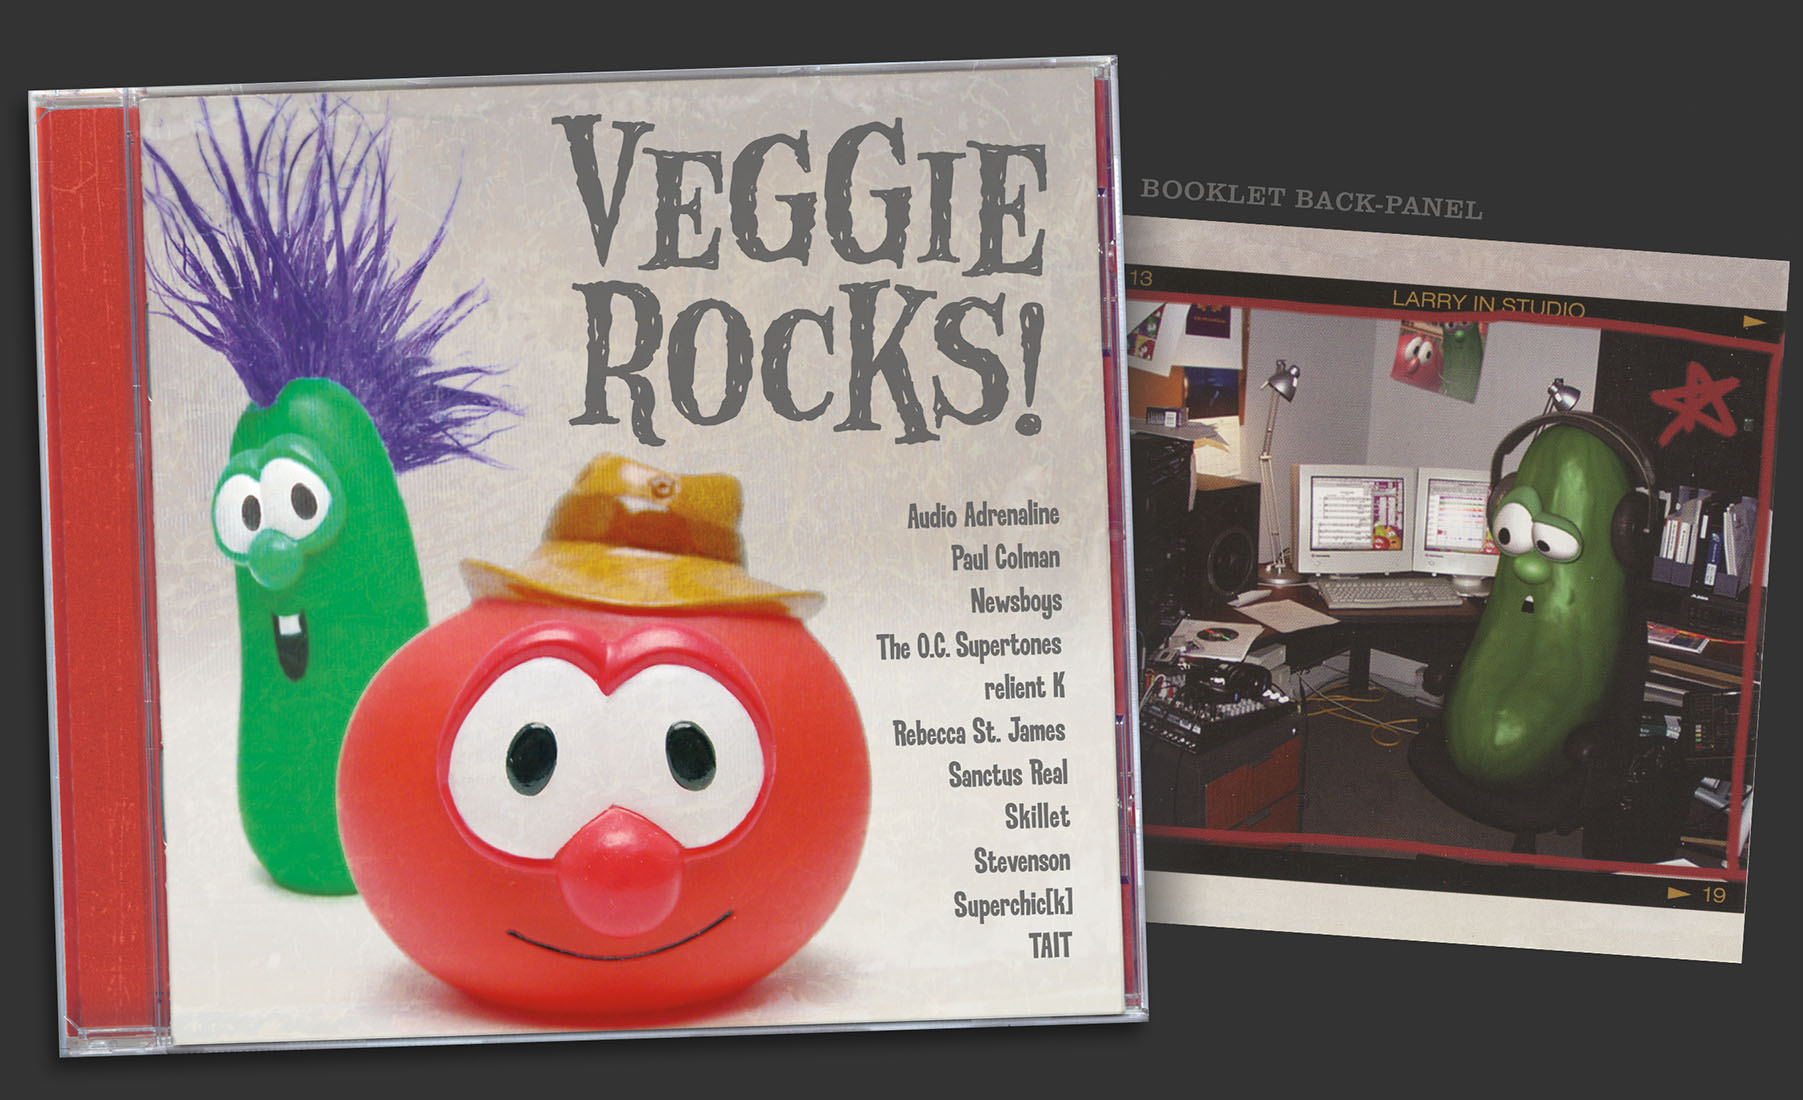 Packaging-CD-VeggieRocks-Final